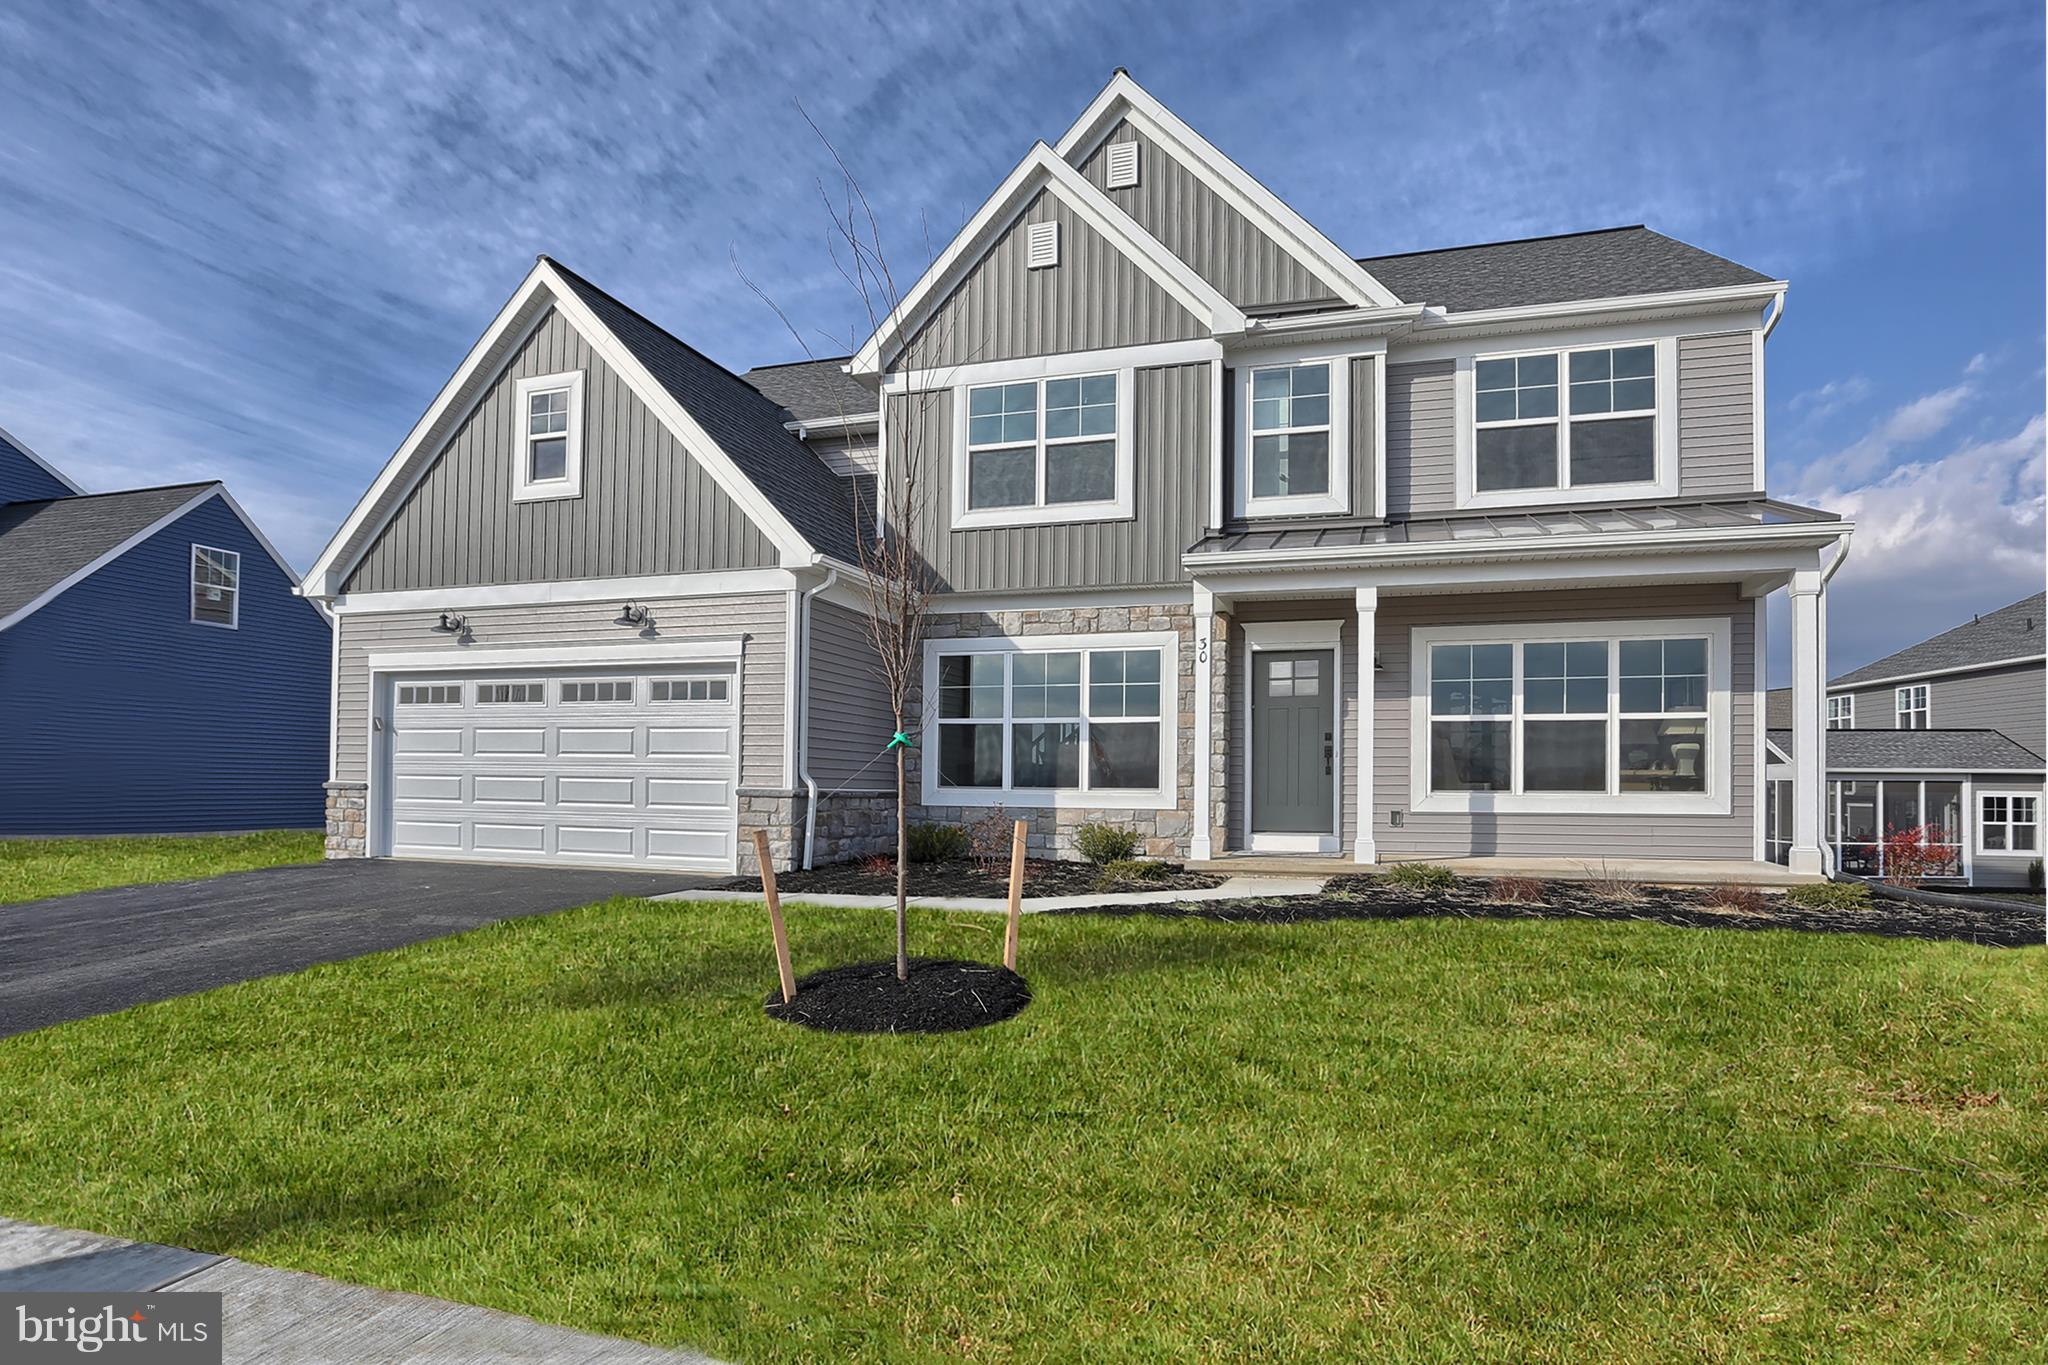 30 BLUE JAY WAY, ANNVILLE, PA 17003